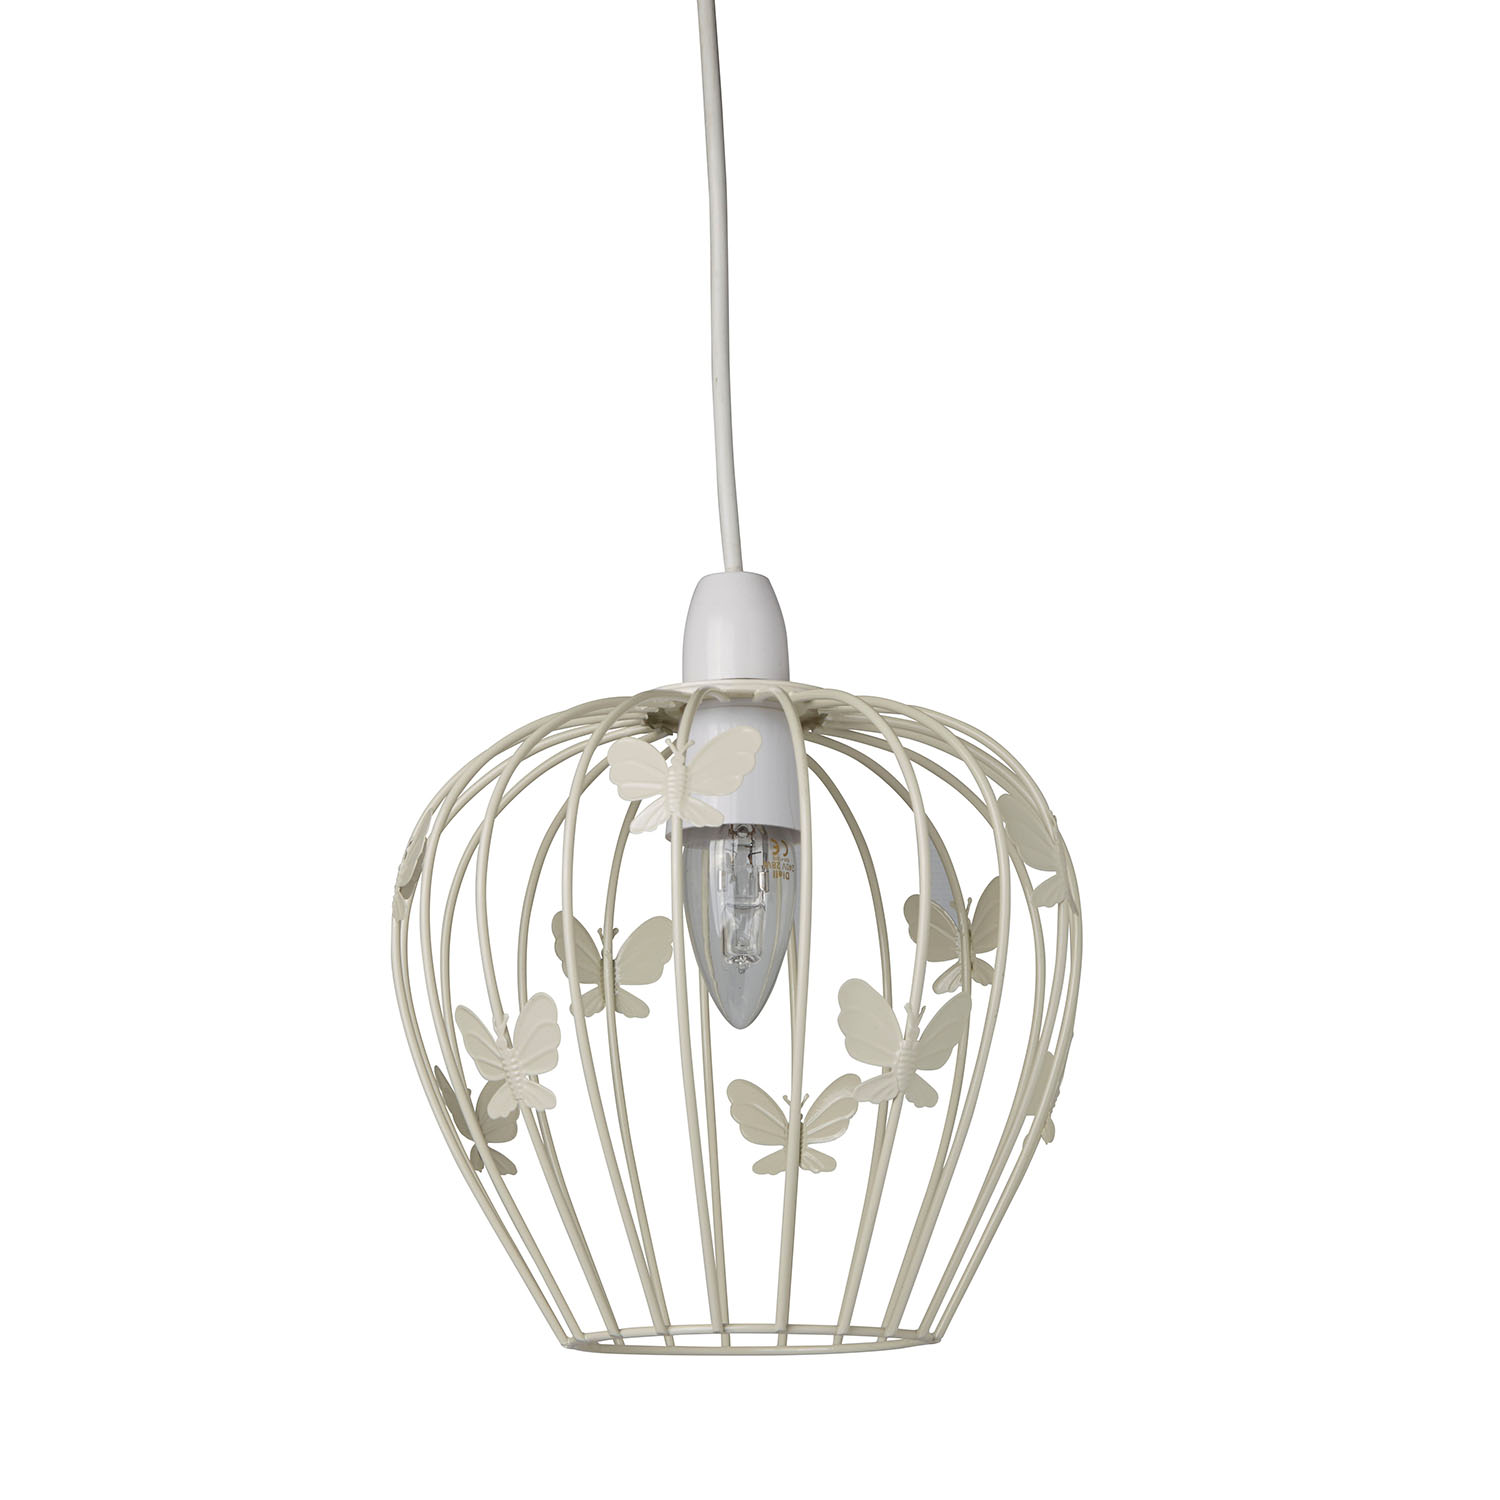 Image of Casa Butterfly Ceiling Lamp Shade, Cream